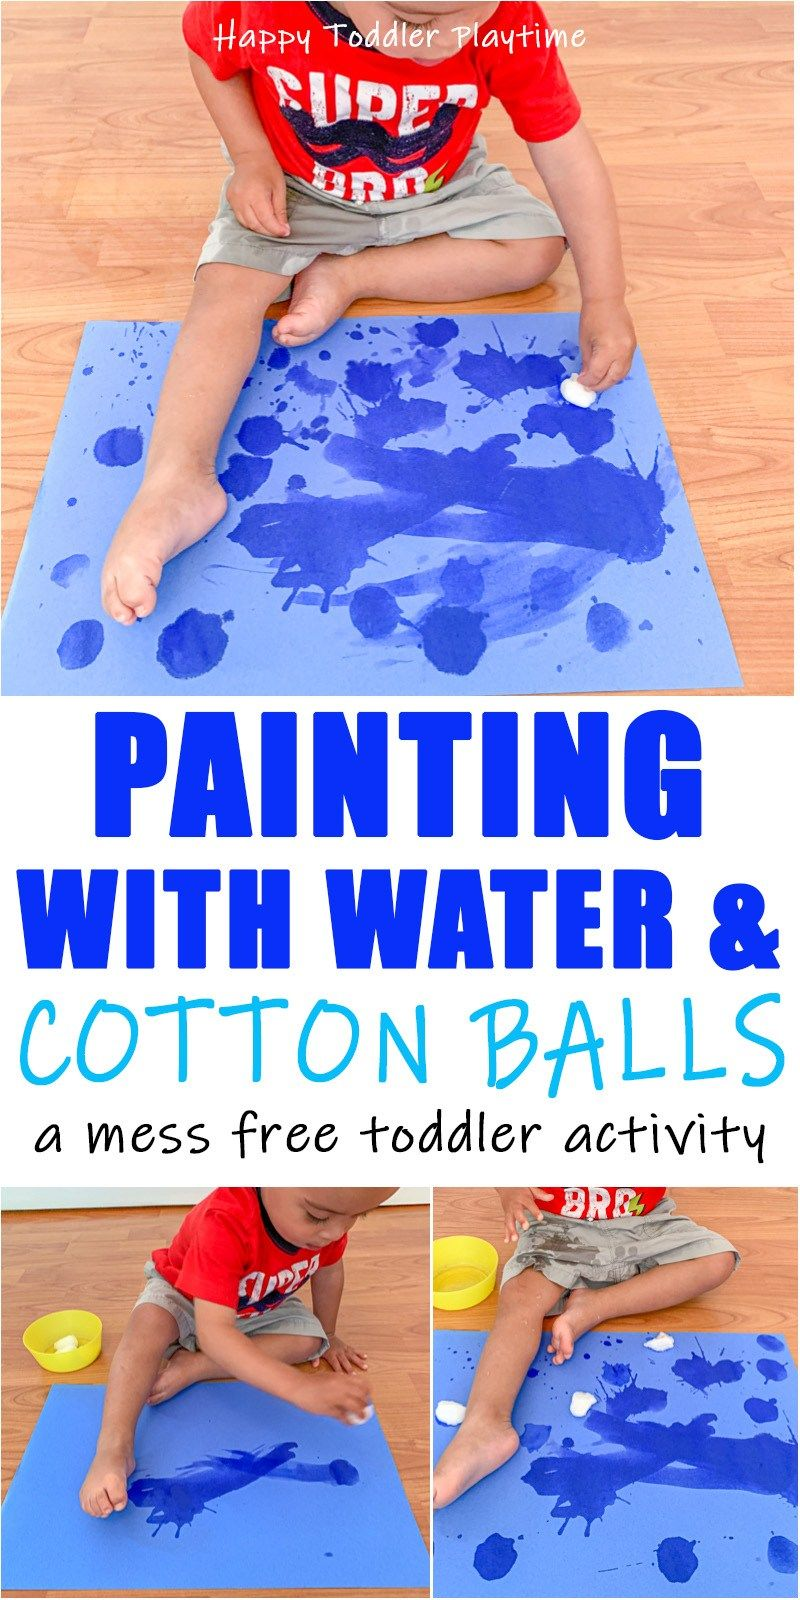 Painting with Water & Cotton Balls